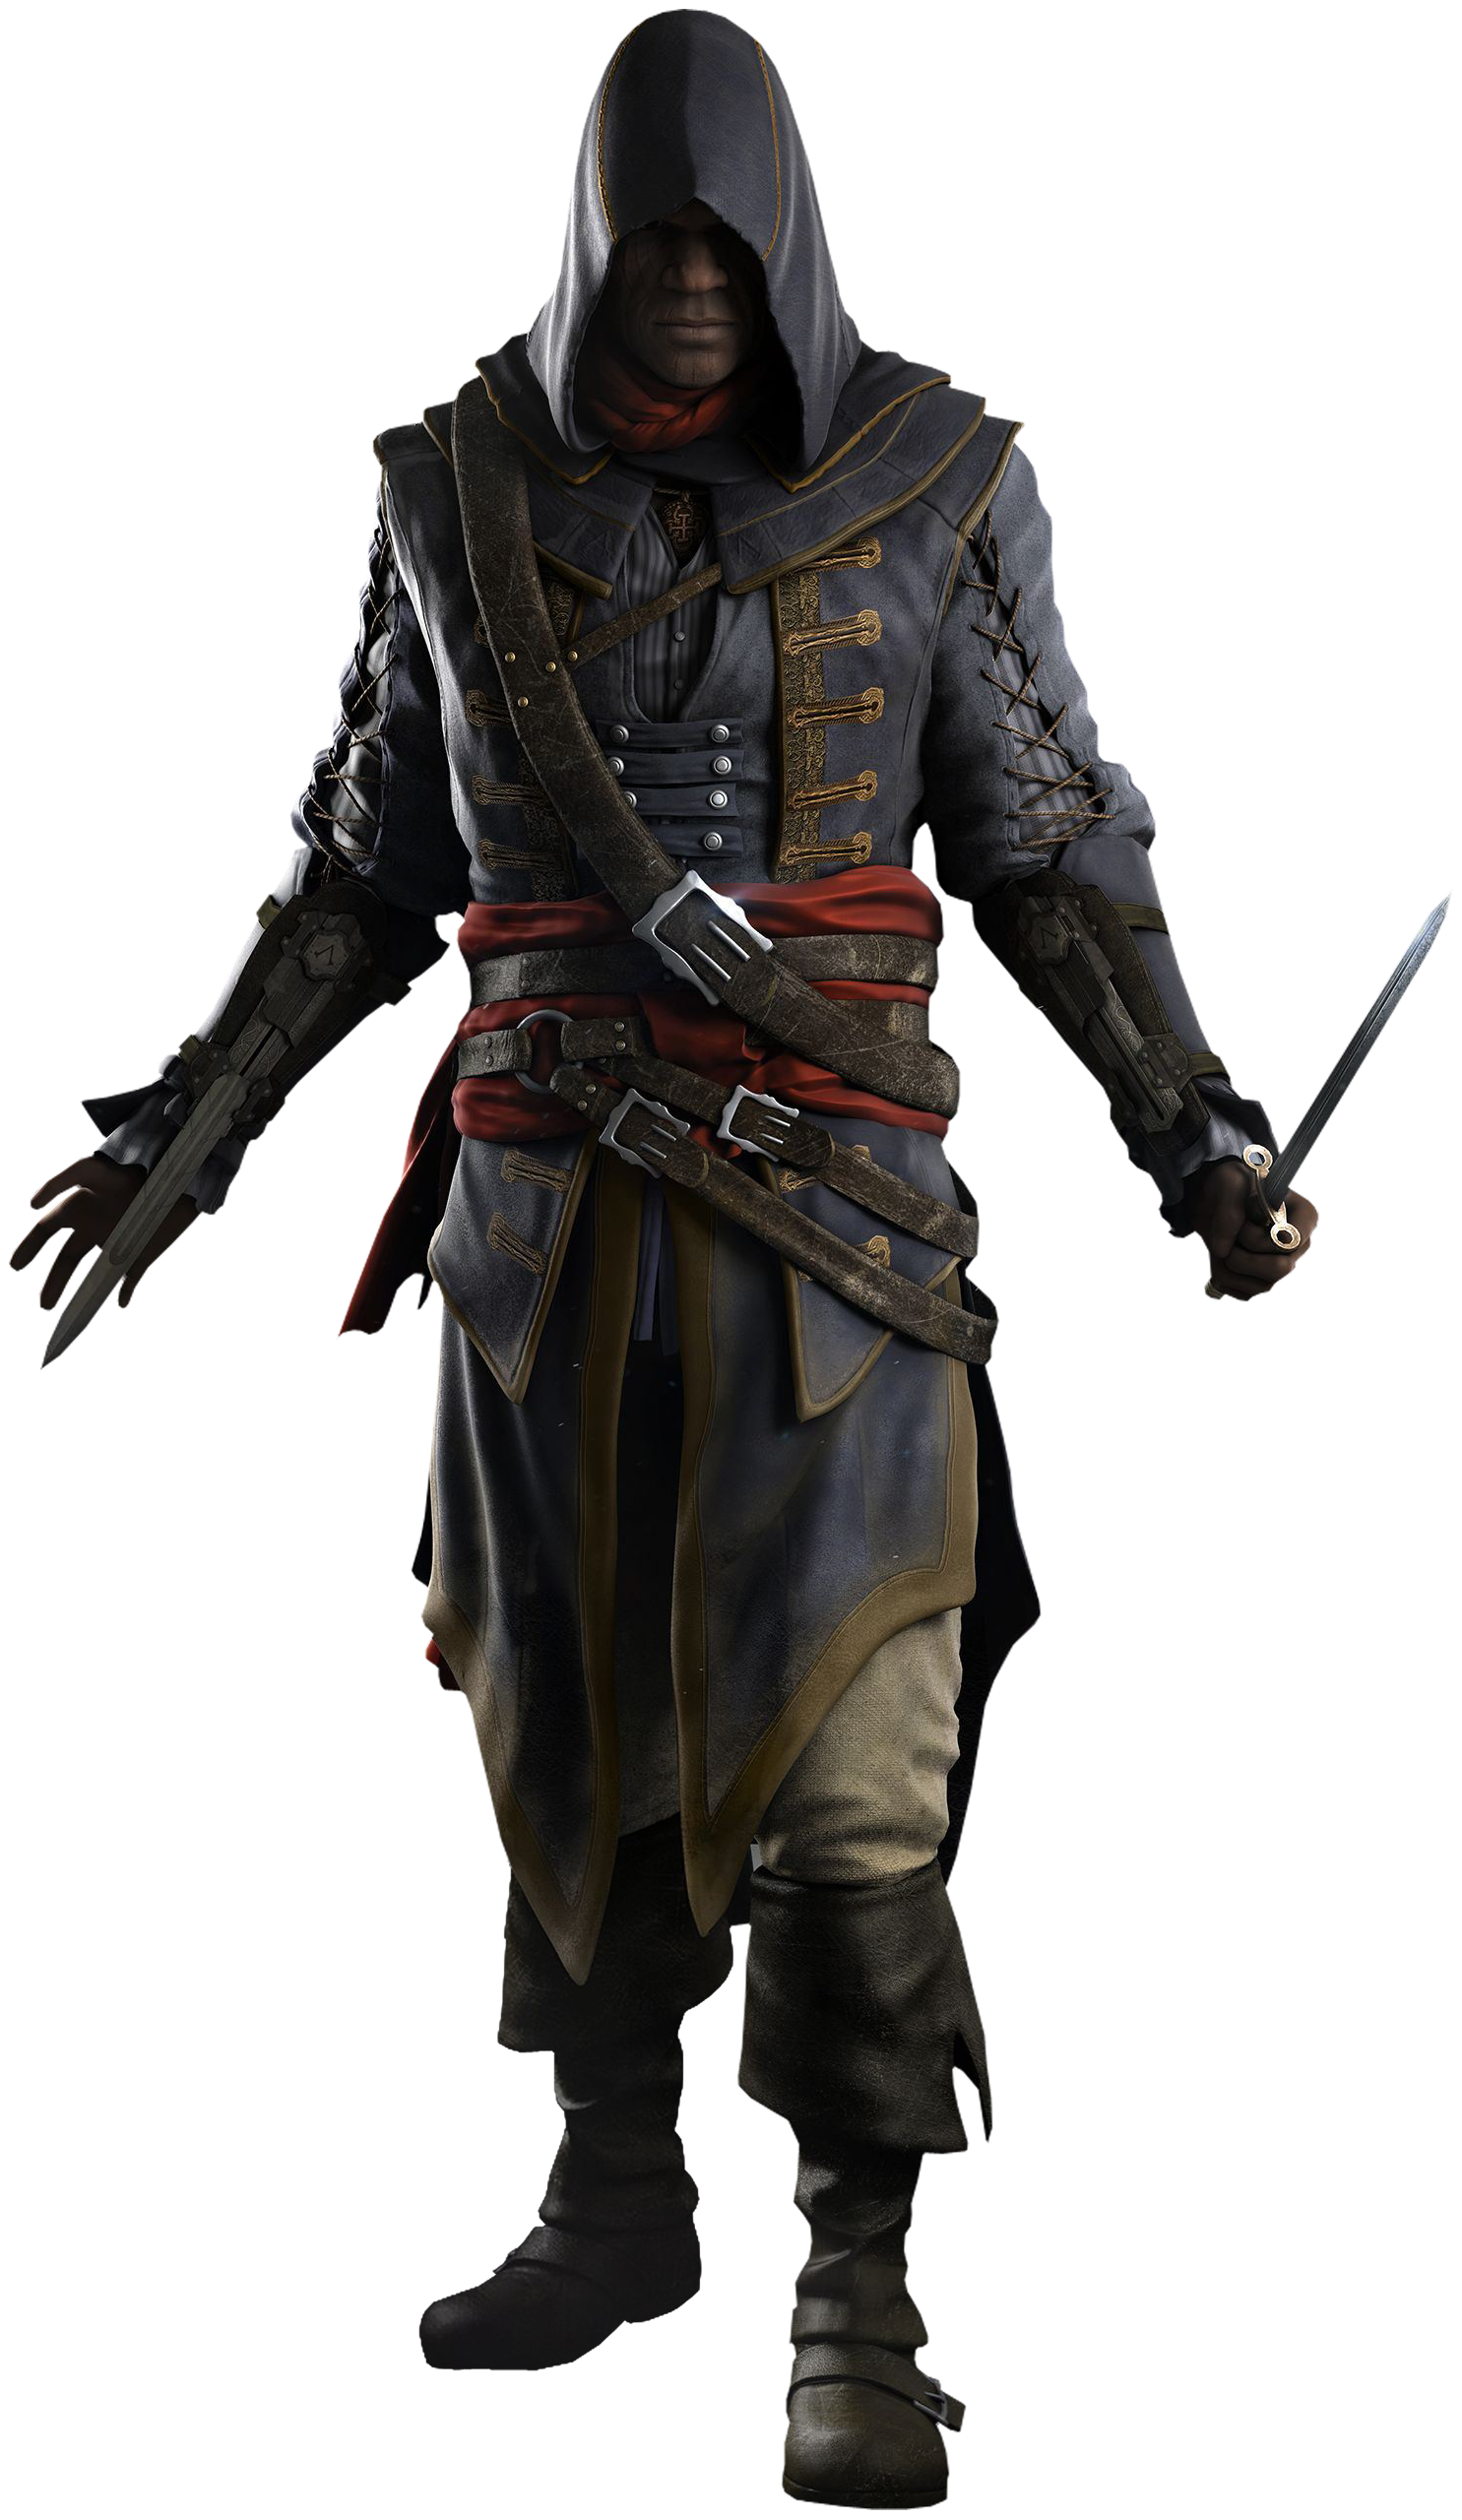 Ad wal assassin 39 s creed wiki fandom powered by wikia - Robe de mariee bustier transparent ...